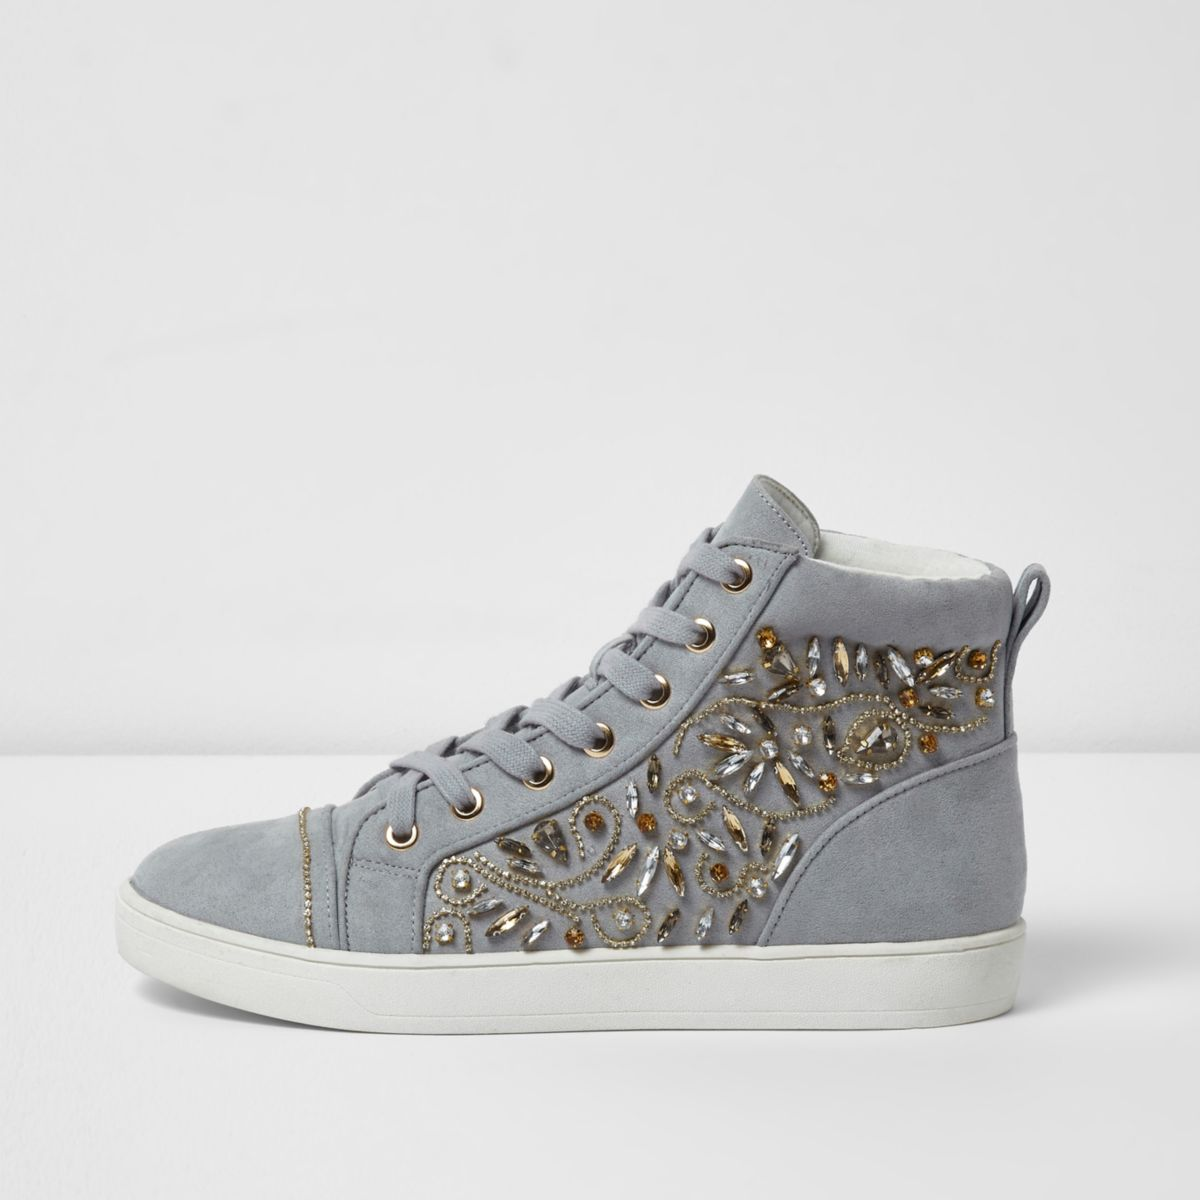 Grey embellished hi top lace-up sneakers